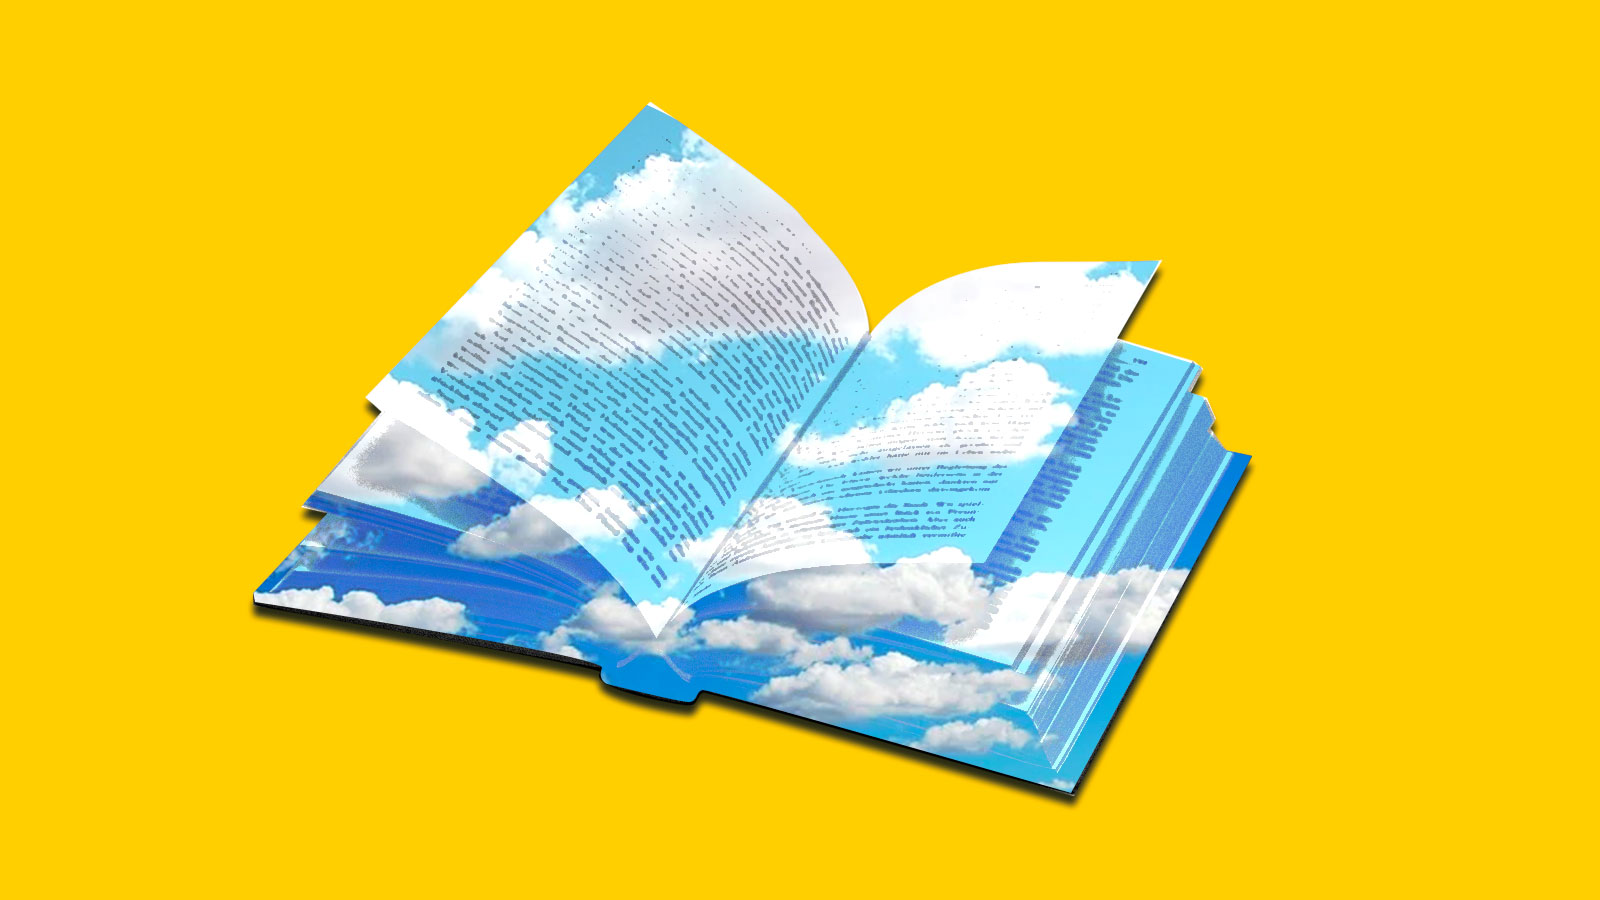 Collage: an open book with blue cloudy sky on top of it